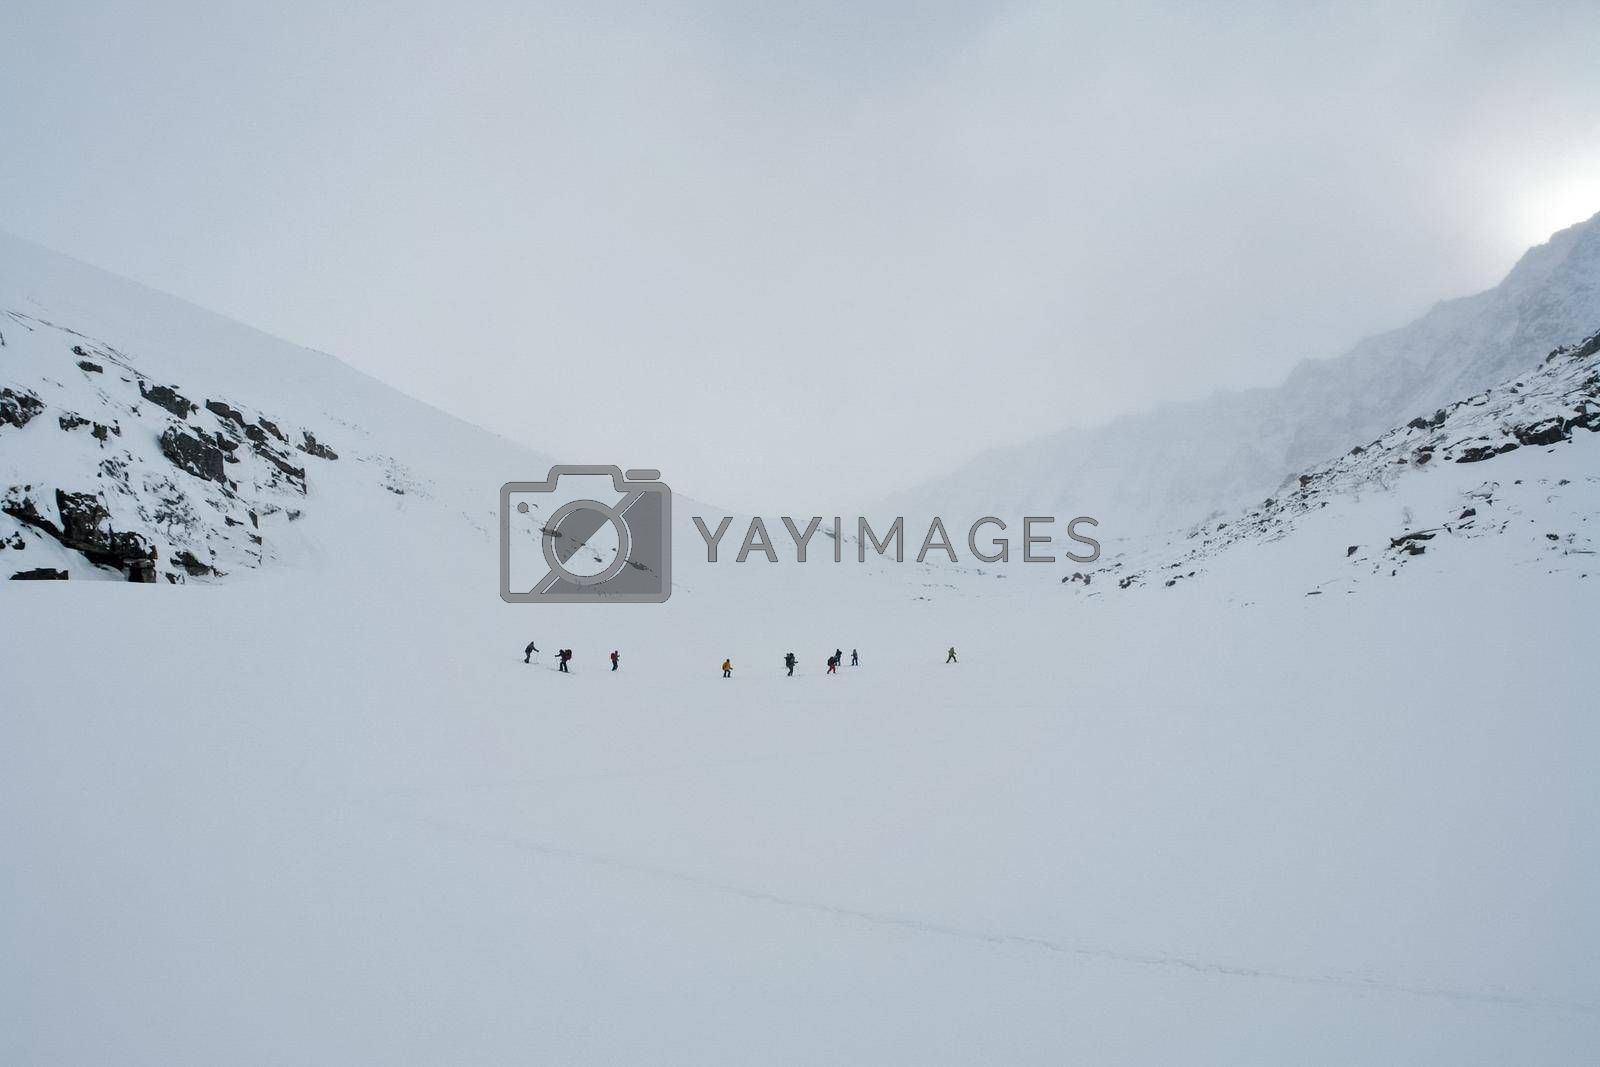 Tankhoy, Russia - January 20, 2019: Skiers ride in the snow in the mountains of Baikal